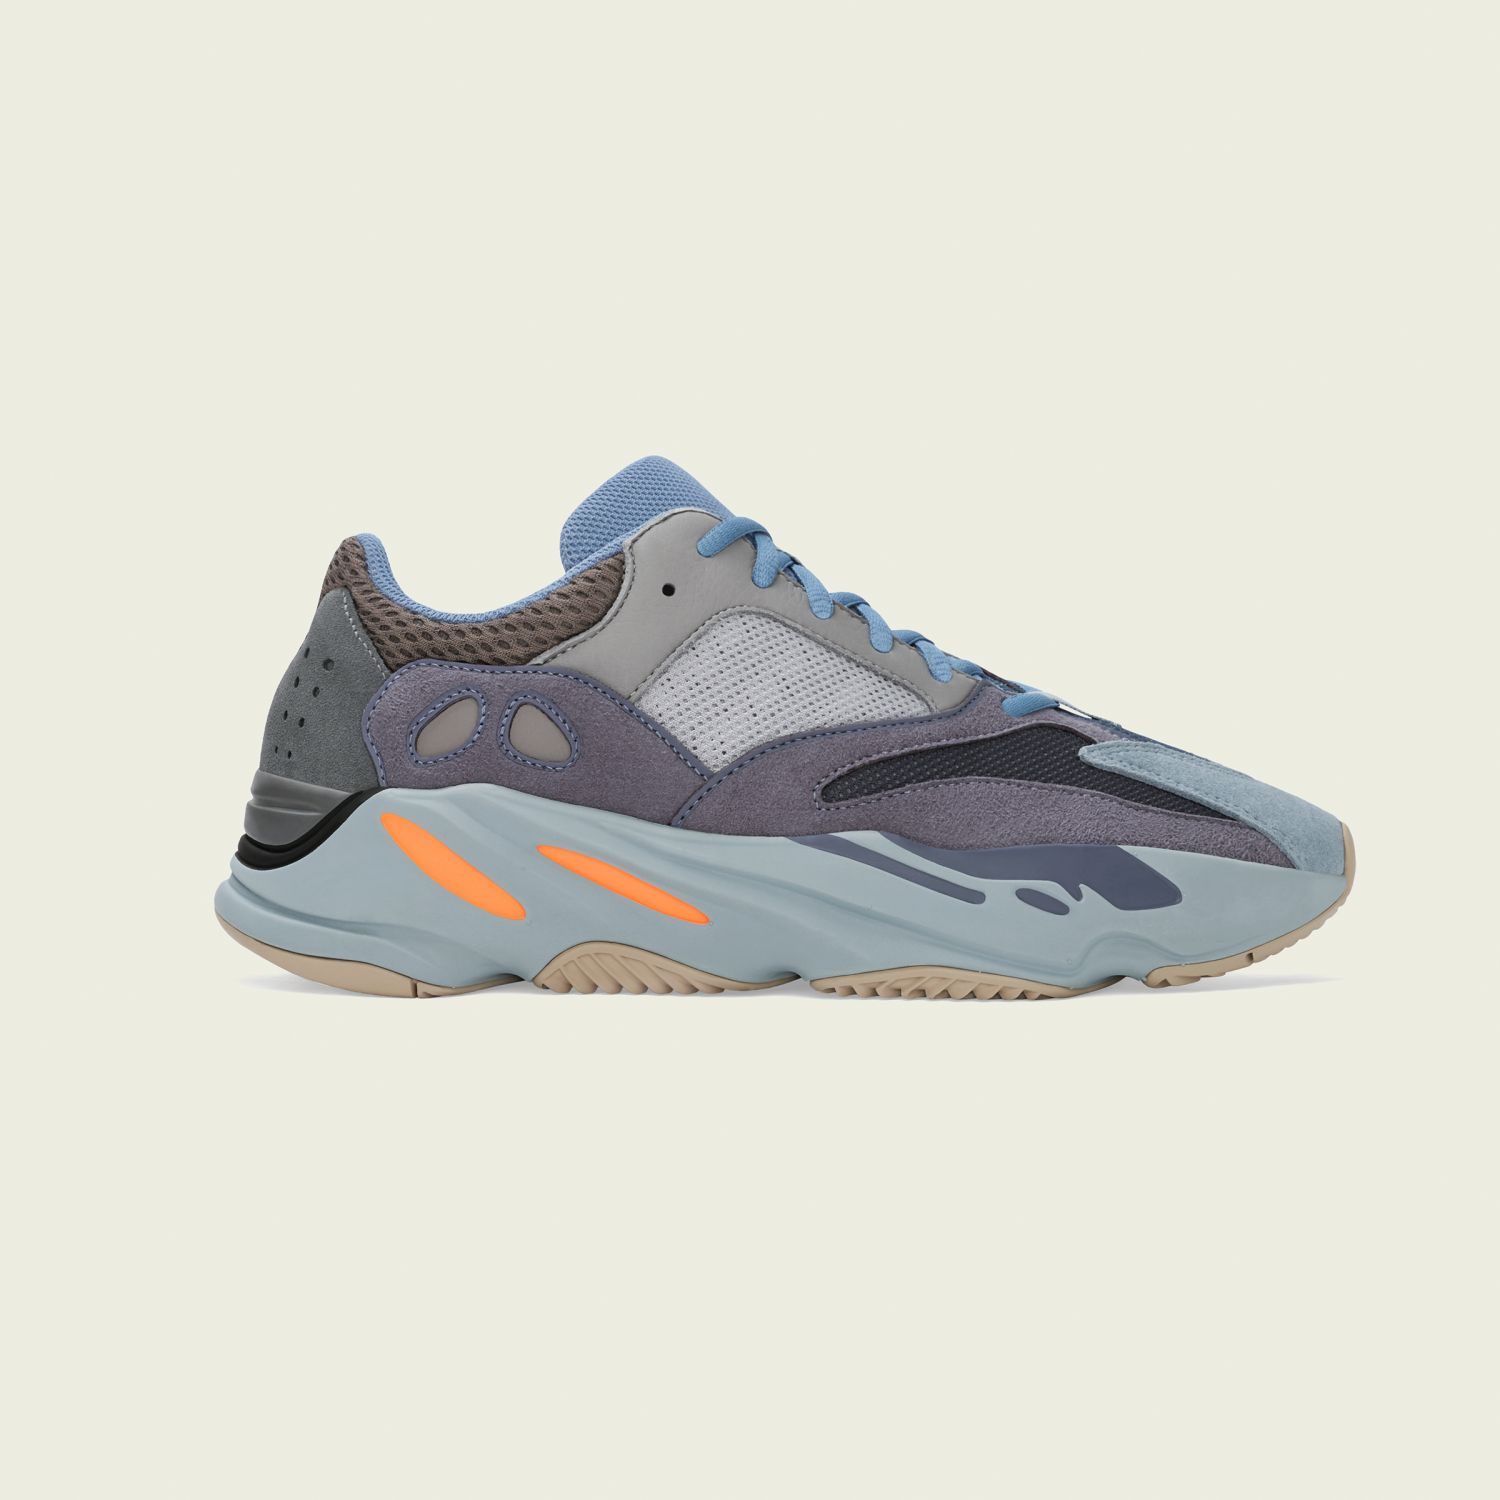 Yeezy Boost 700 Carbon Blue [1]